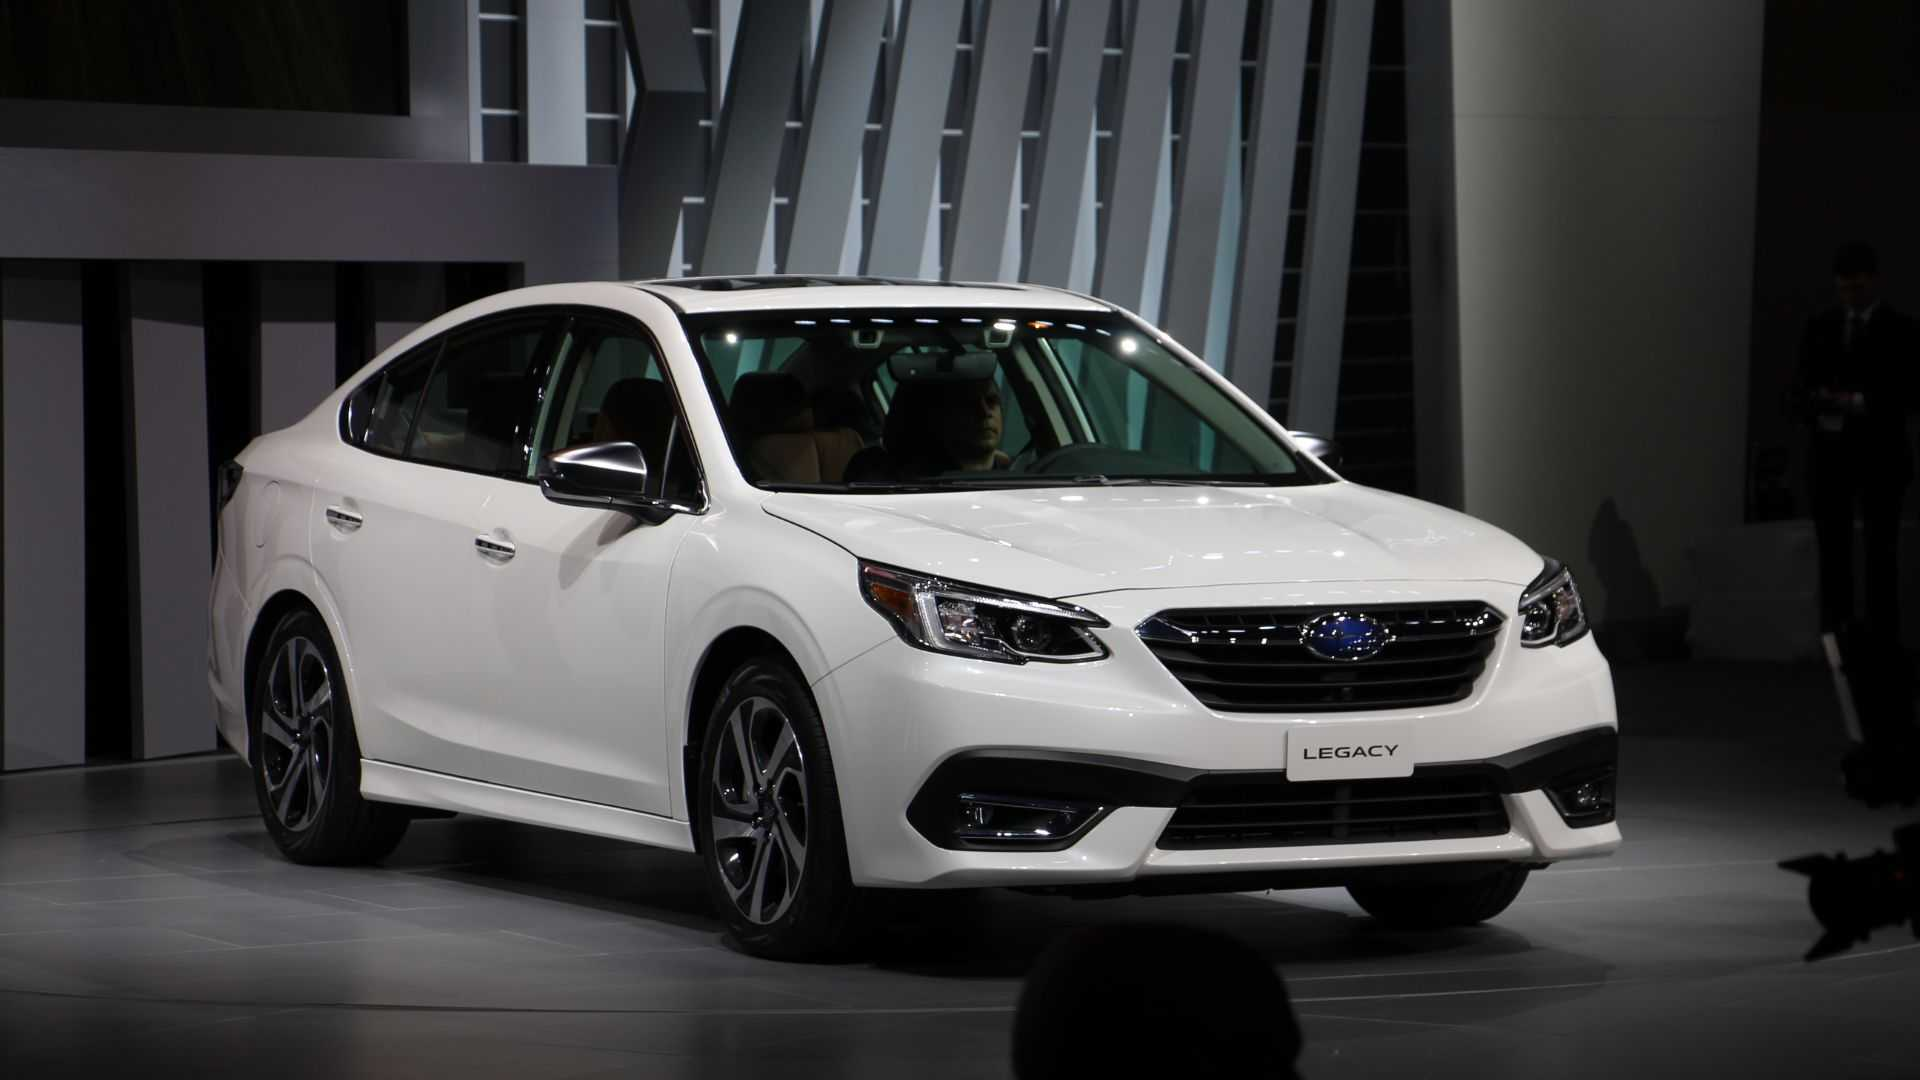 37 A Subaru Legacy 2020 Turbo Price and Review